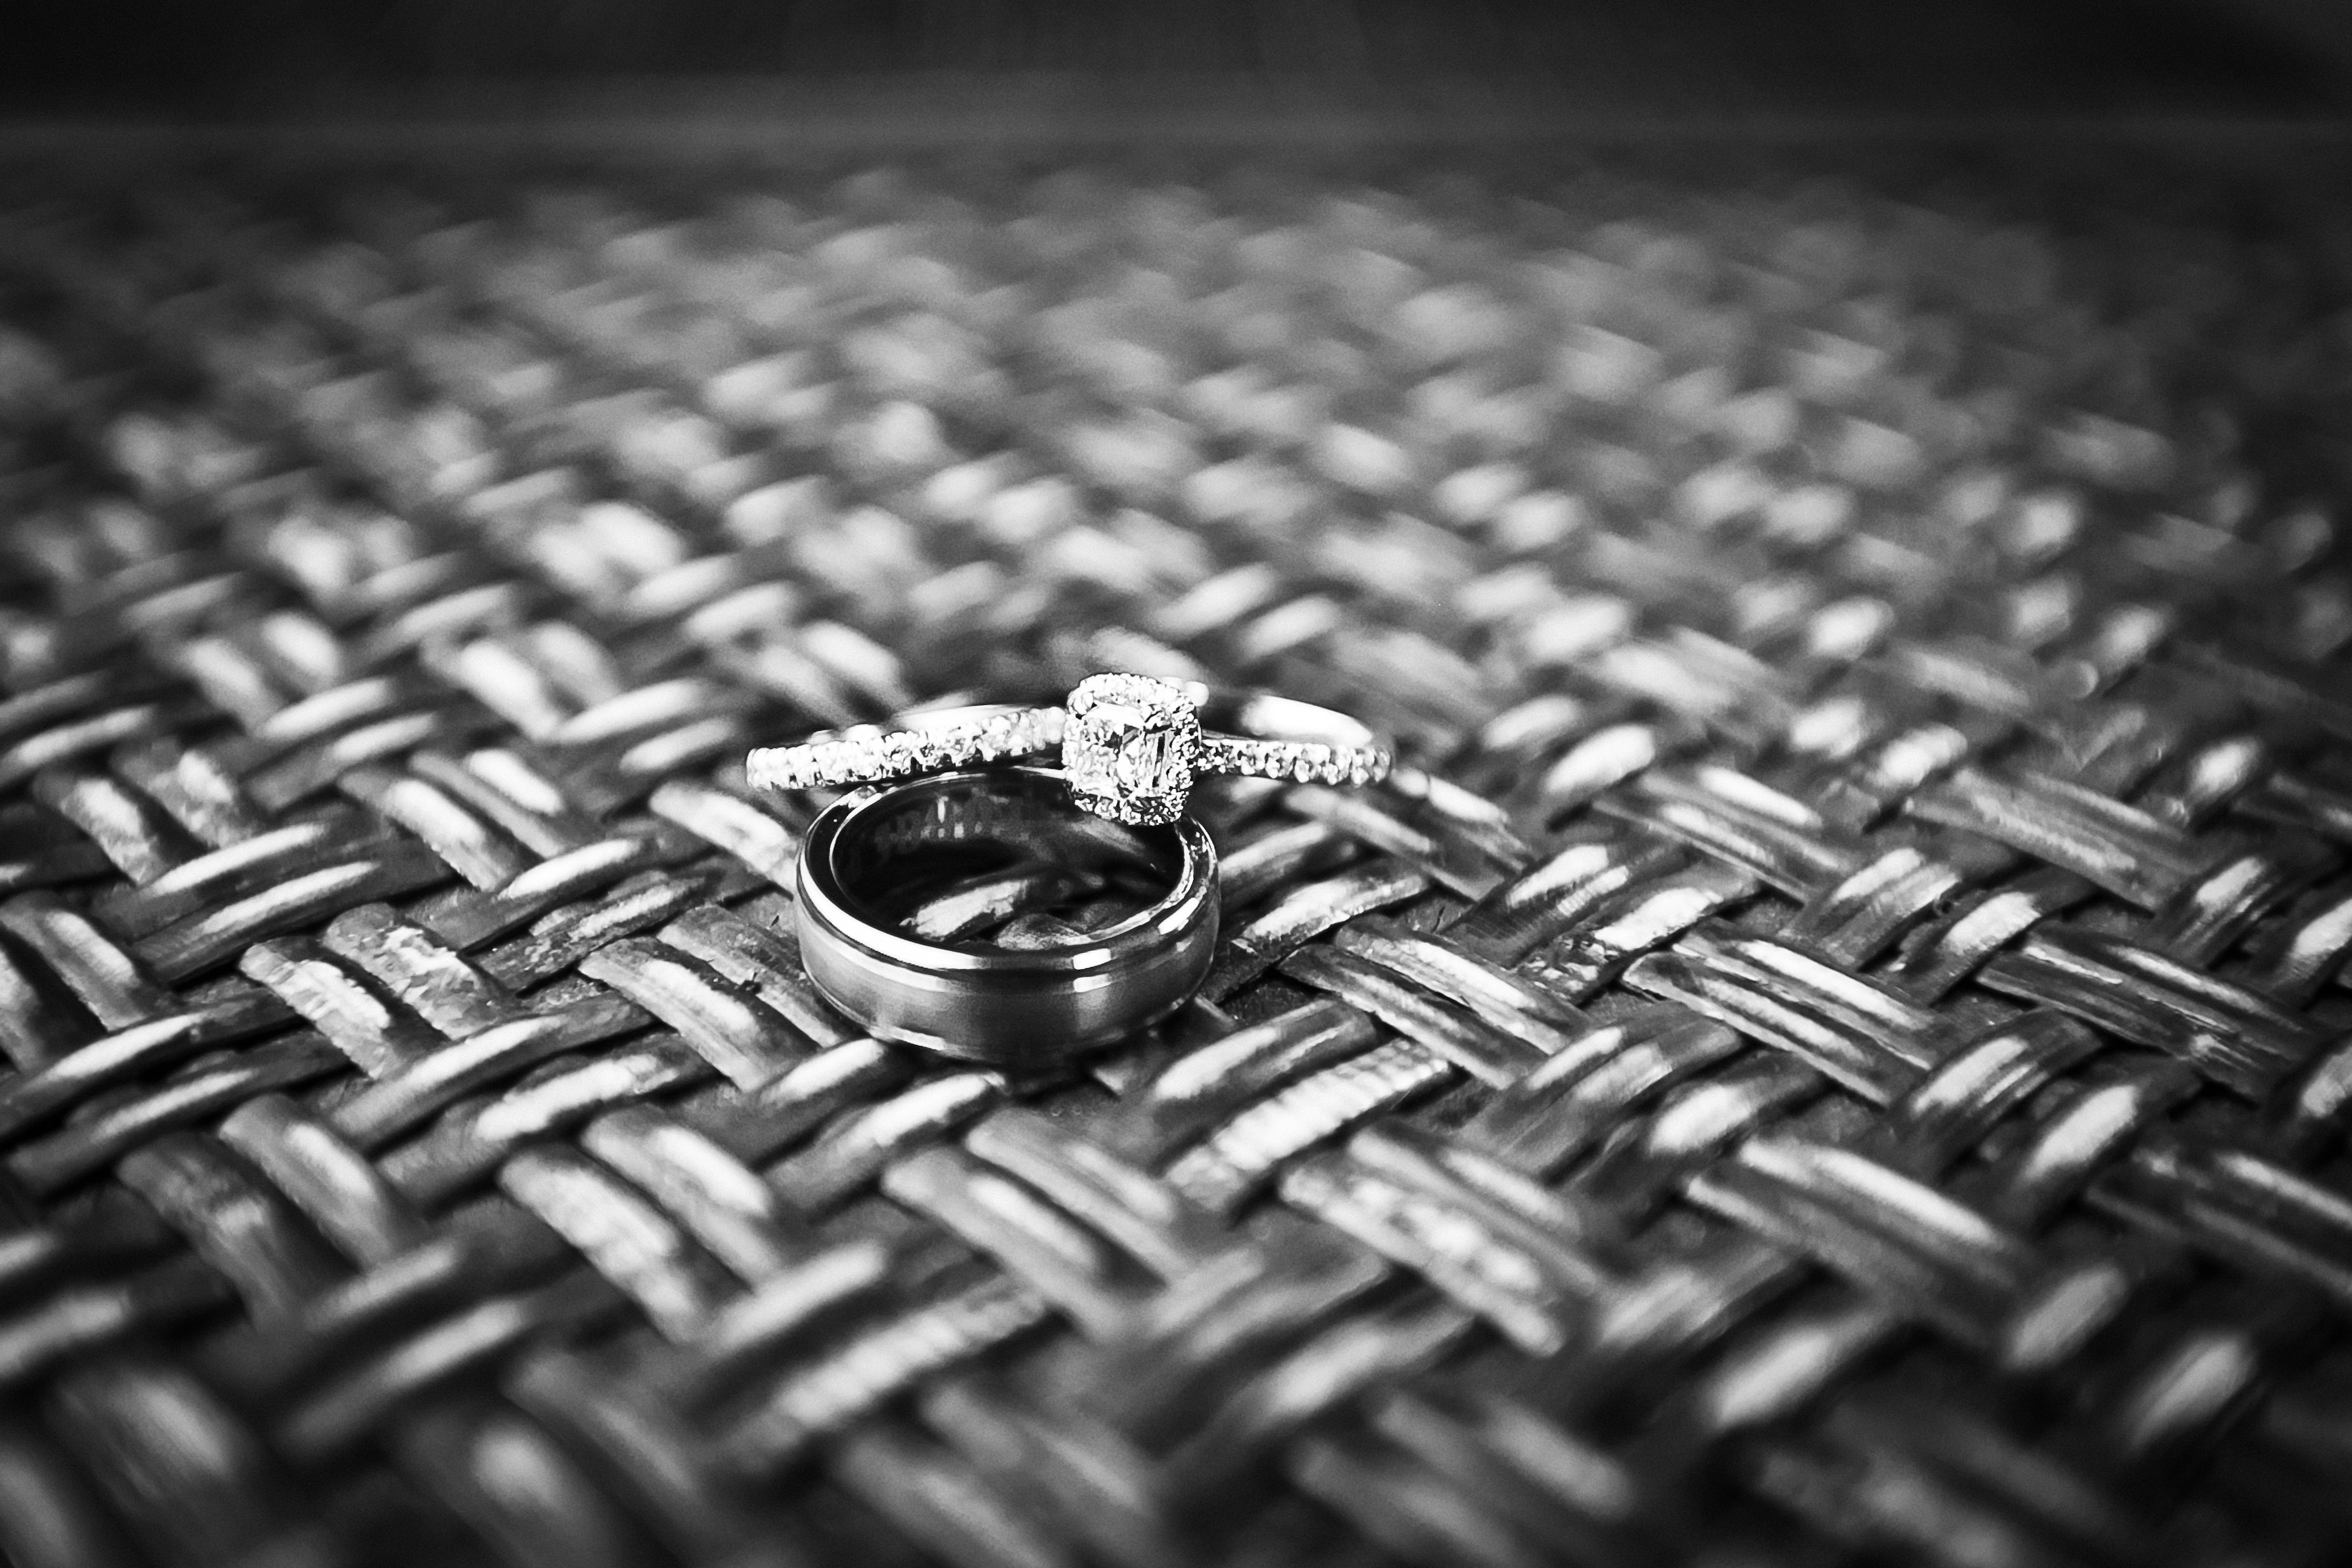 Rings, Dan klutz photography